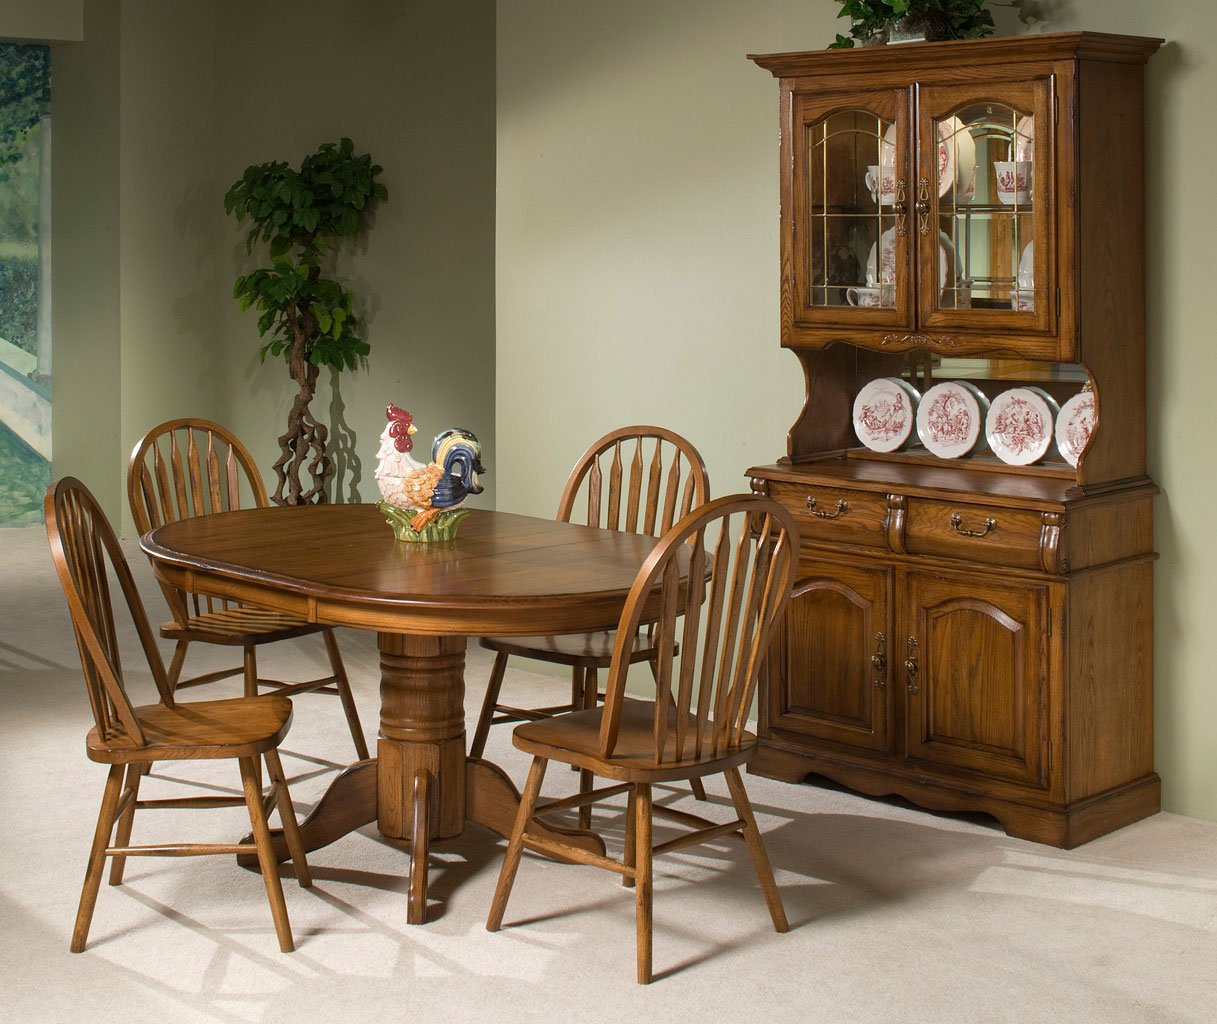 Oak Dining Room Furniture: Classic Oak Round Dining Room Set (Burnished Rustic